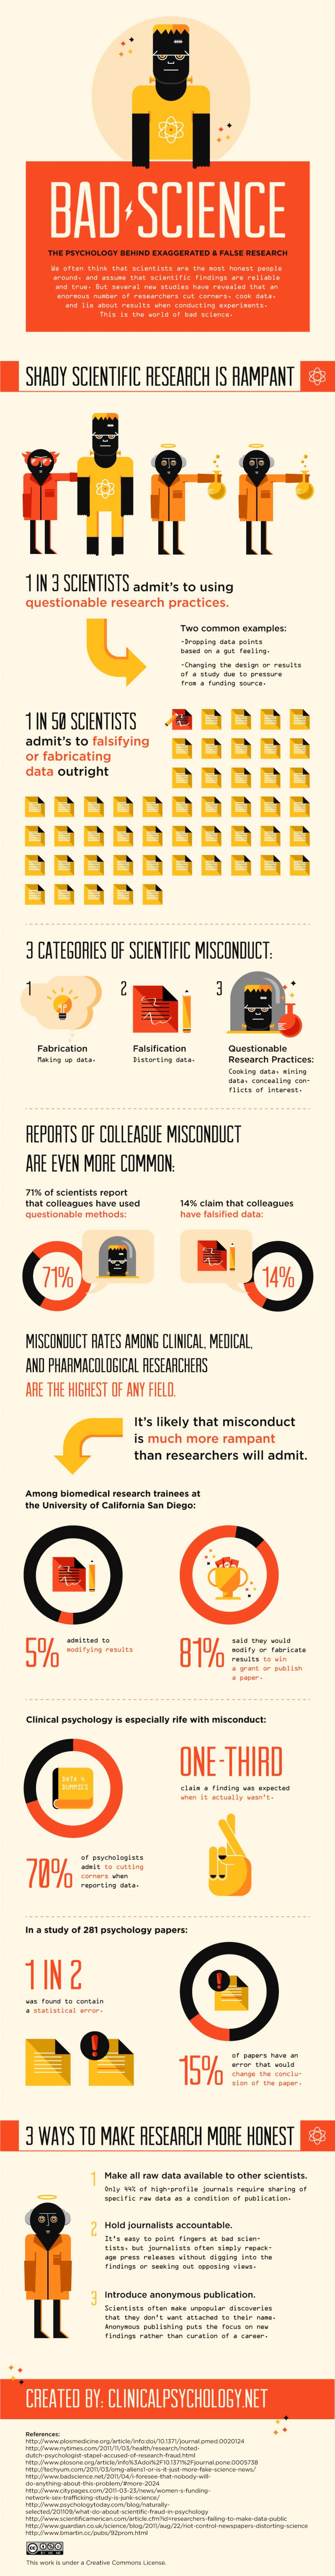 What Is The Psychology Behind Bad Science and False Research? Infographic